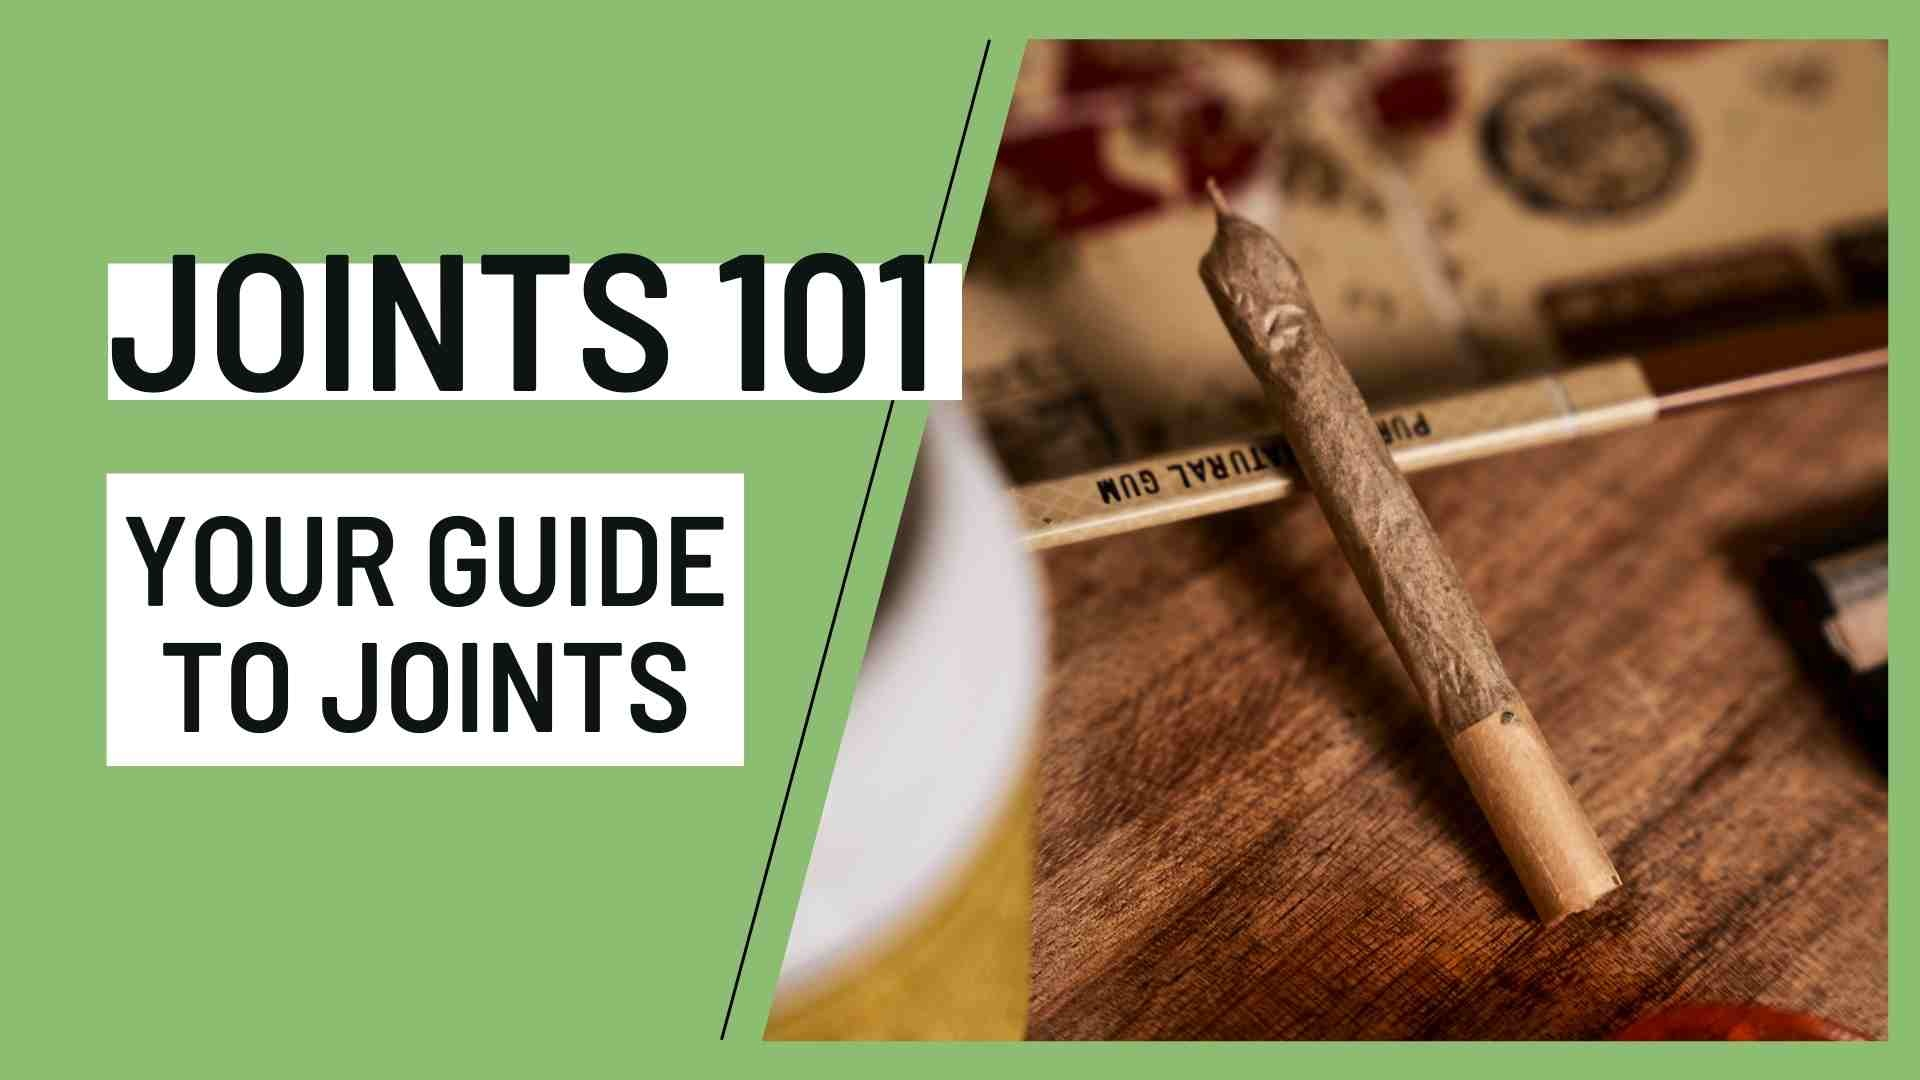 JOINTS 101 - What is a joint and how to deal with it?